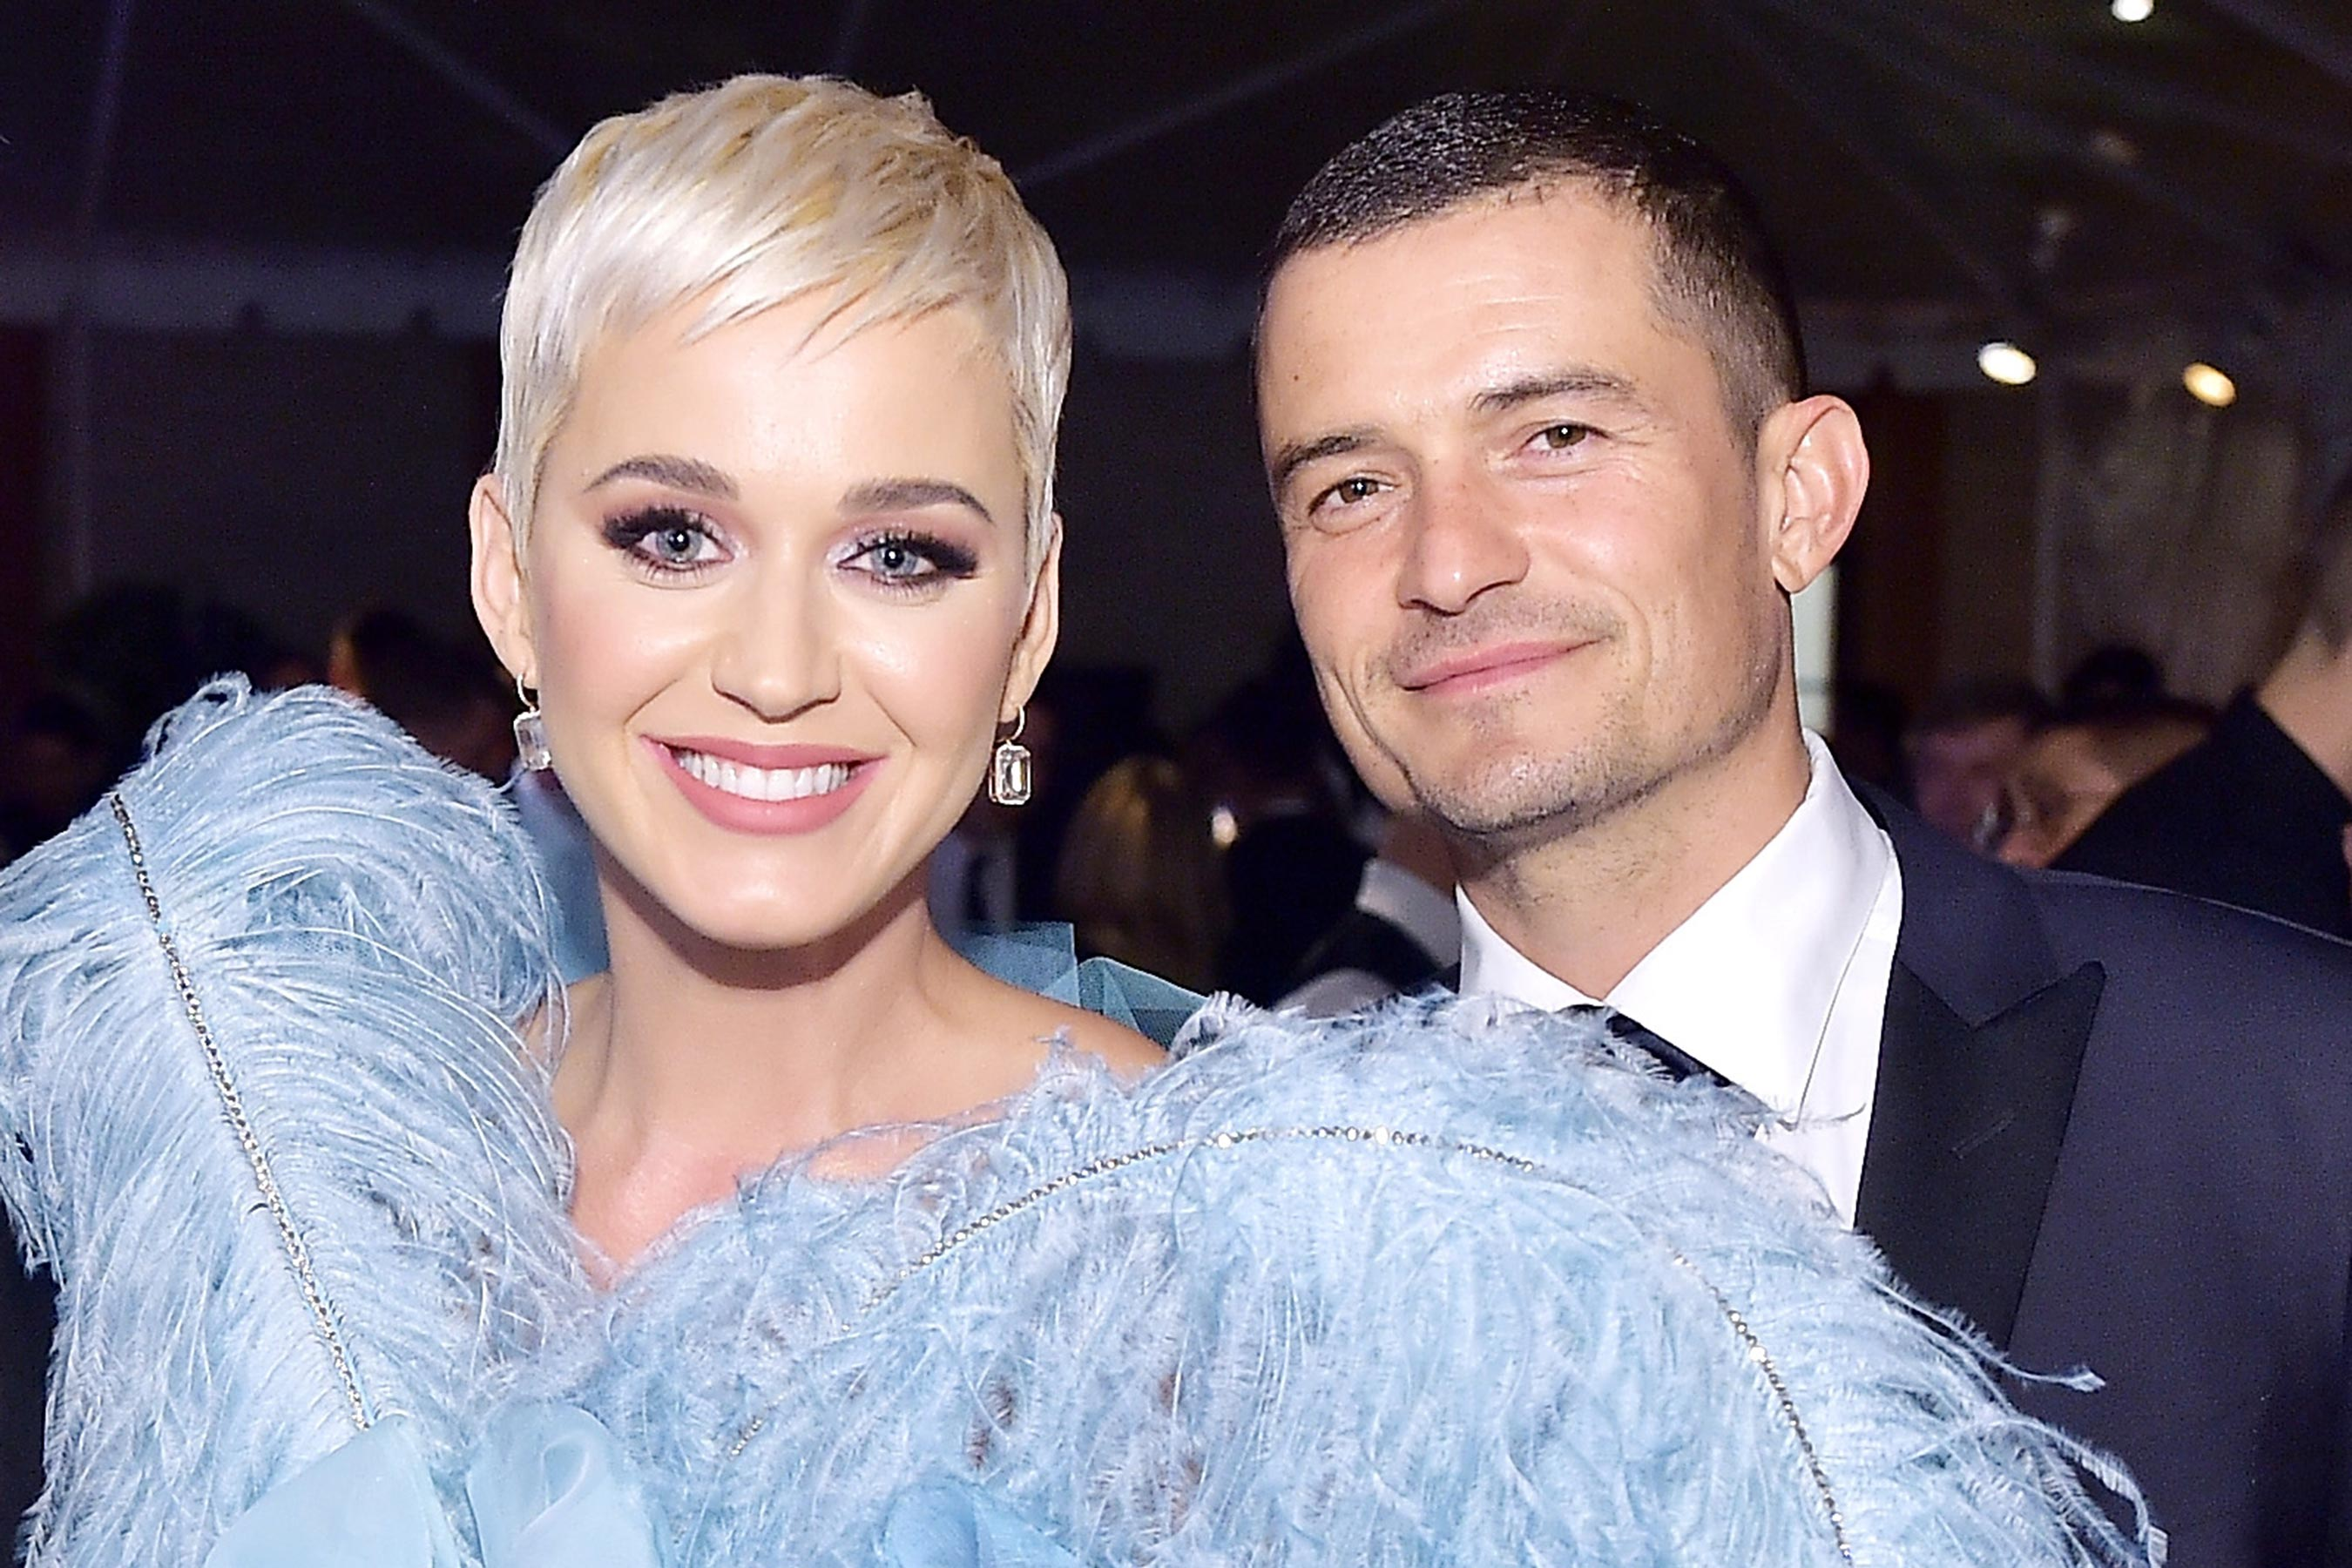 Katy Perry reveals details of how Orlando Bloom proposed